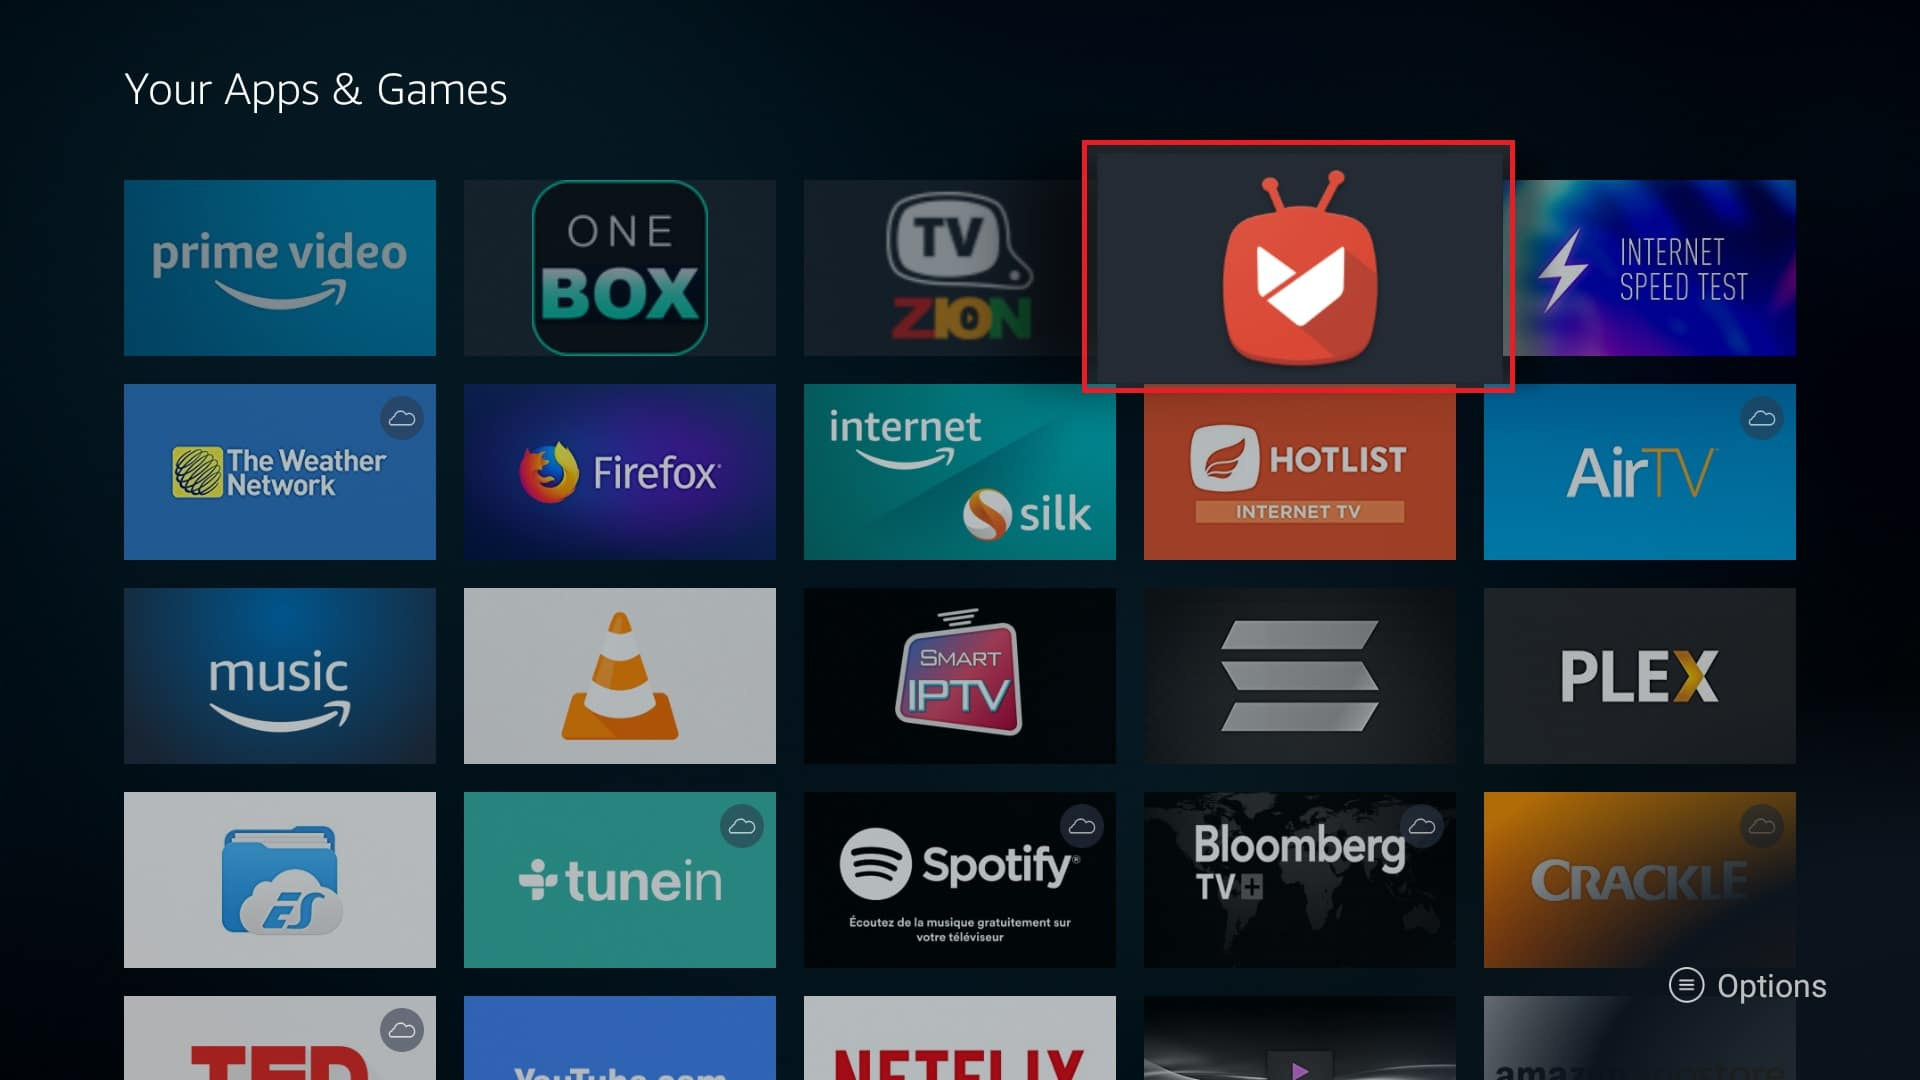 If you have a Fire TV, You need This App! - ClickyTV, the